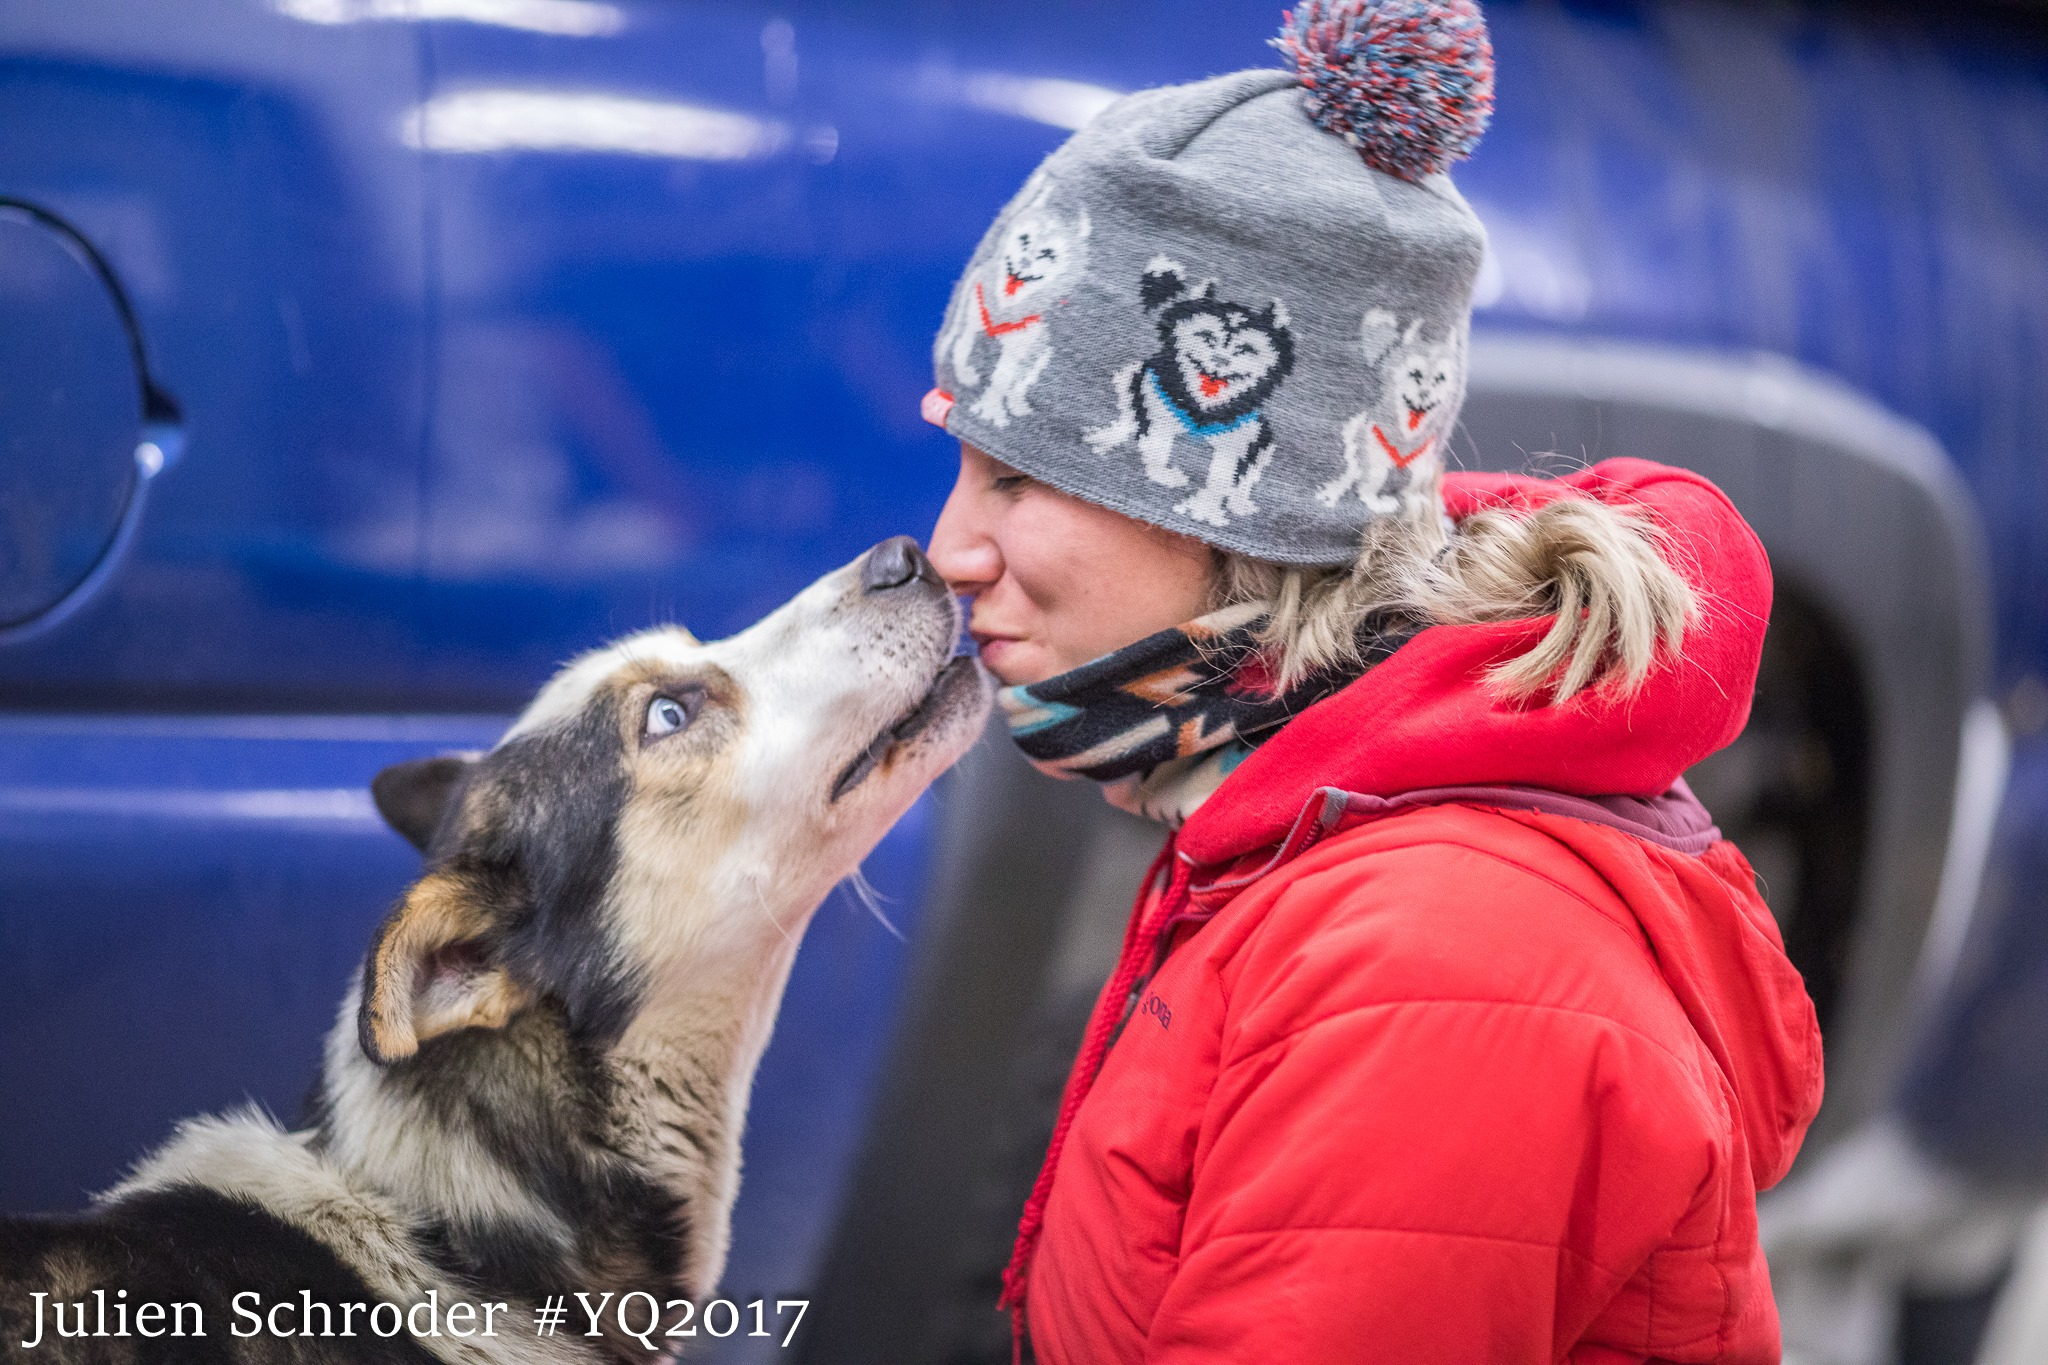 Alaska Bound... - Amanda's experience at the Bedortha's kennel was unlike anything she experienced at her previous kennel. After two weeks here, she applied to every big name in Alaska and landed a Musher/Tour Guide gig with Alaska Icefield Expeditions. Brooks packed up her house, put a few items in storage and within a few weeks she had a one-way ticket and made her way cross-country to pursue her dream of exploring the vast rugged wilderness of Alaska.Dog camp was where she met Matt and after a summer of working together, Hall invited her back to Smokin' Ace Kennels as a handler. Amanda spent the winter helping train the race team in Two Rivers and learning first hand experience about the in's and out's of racing.